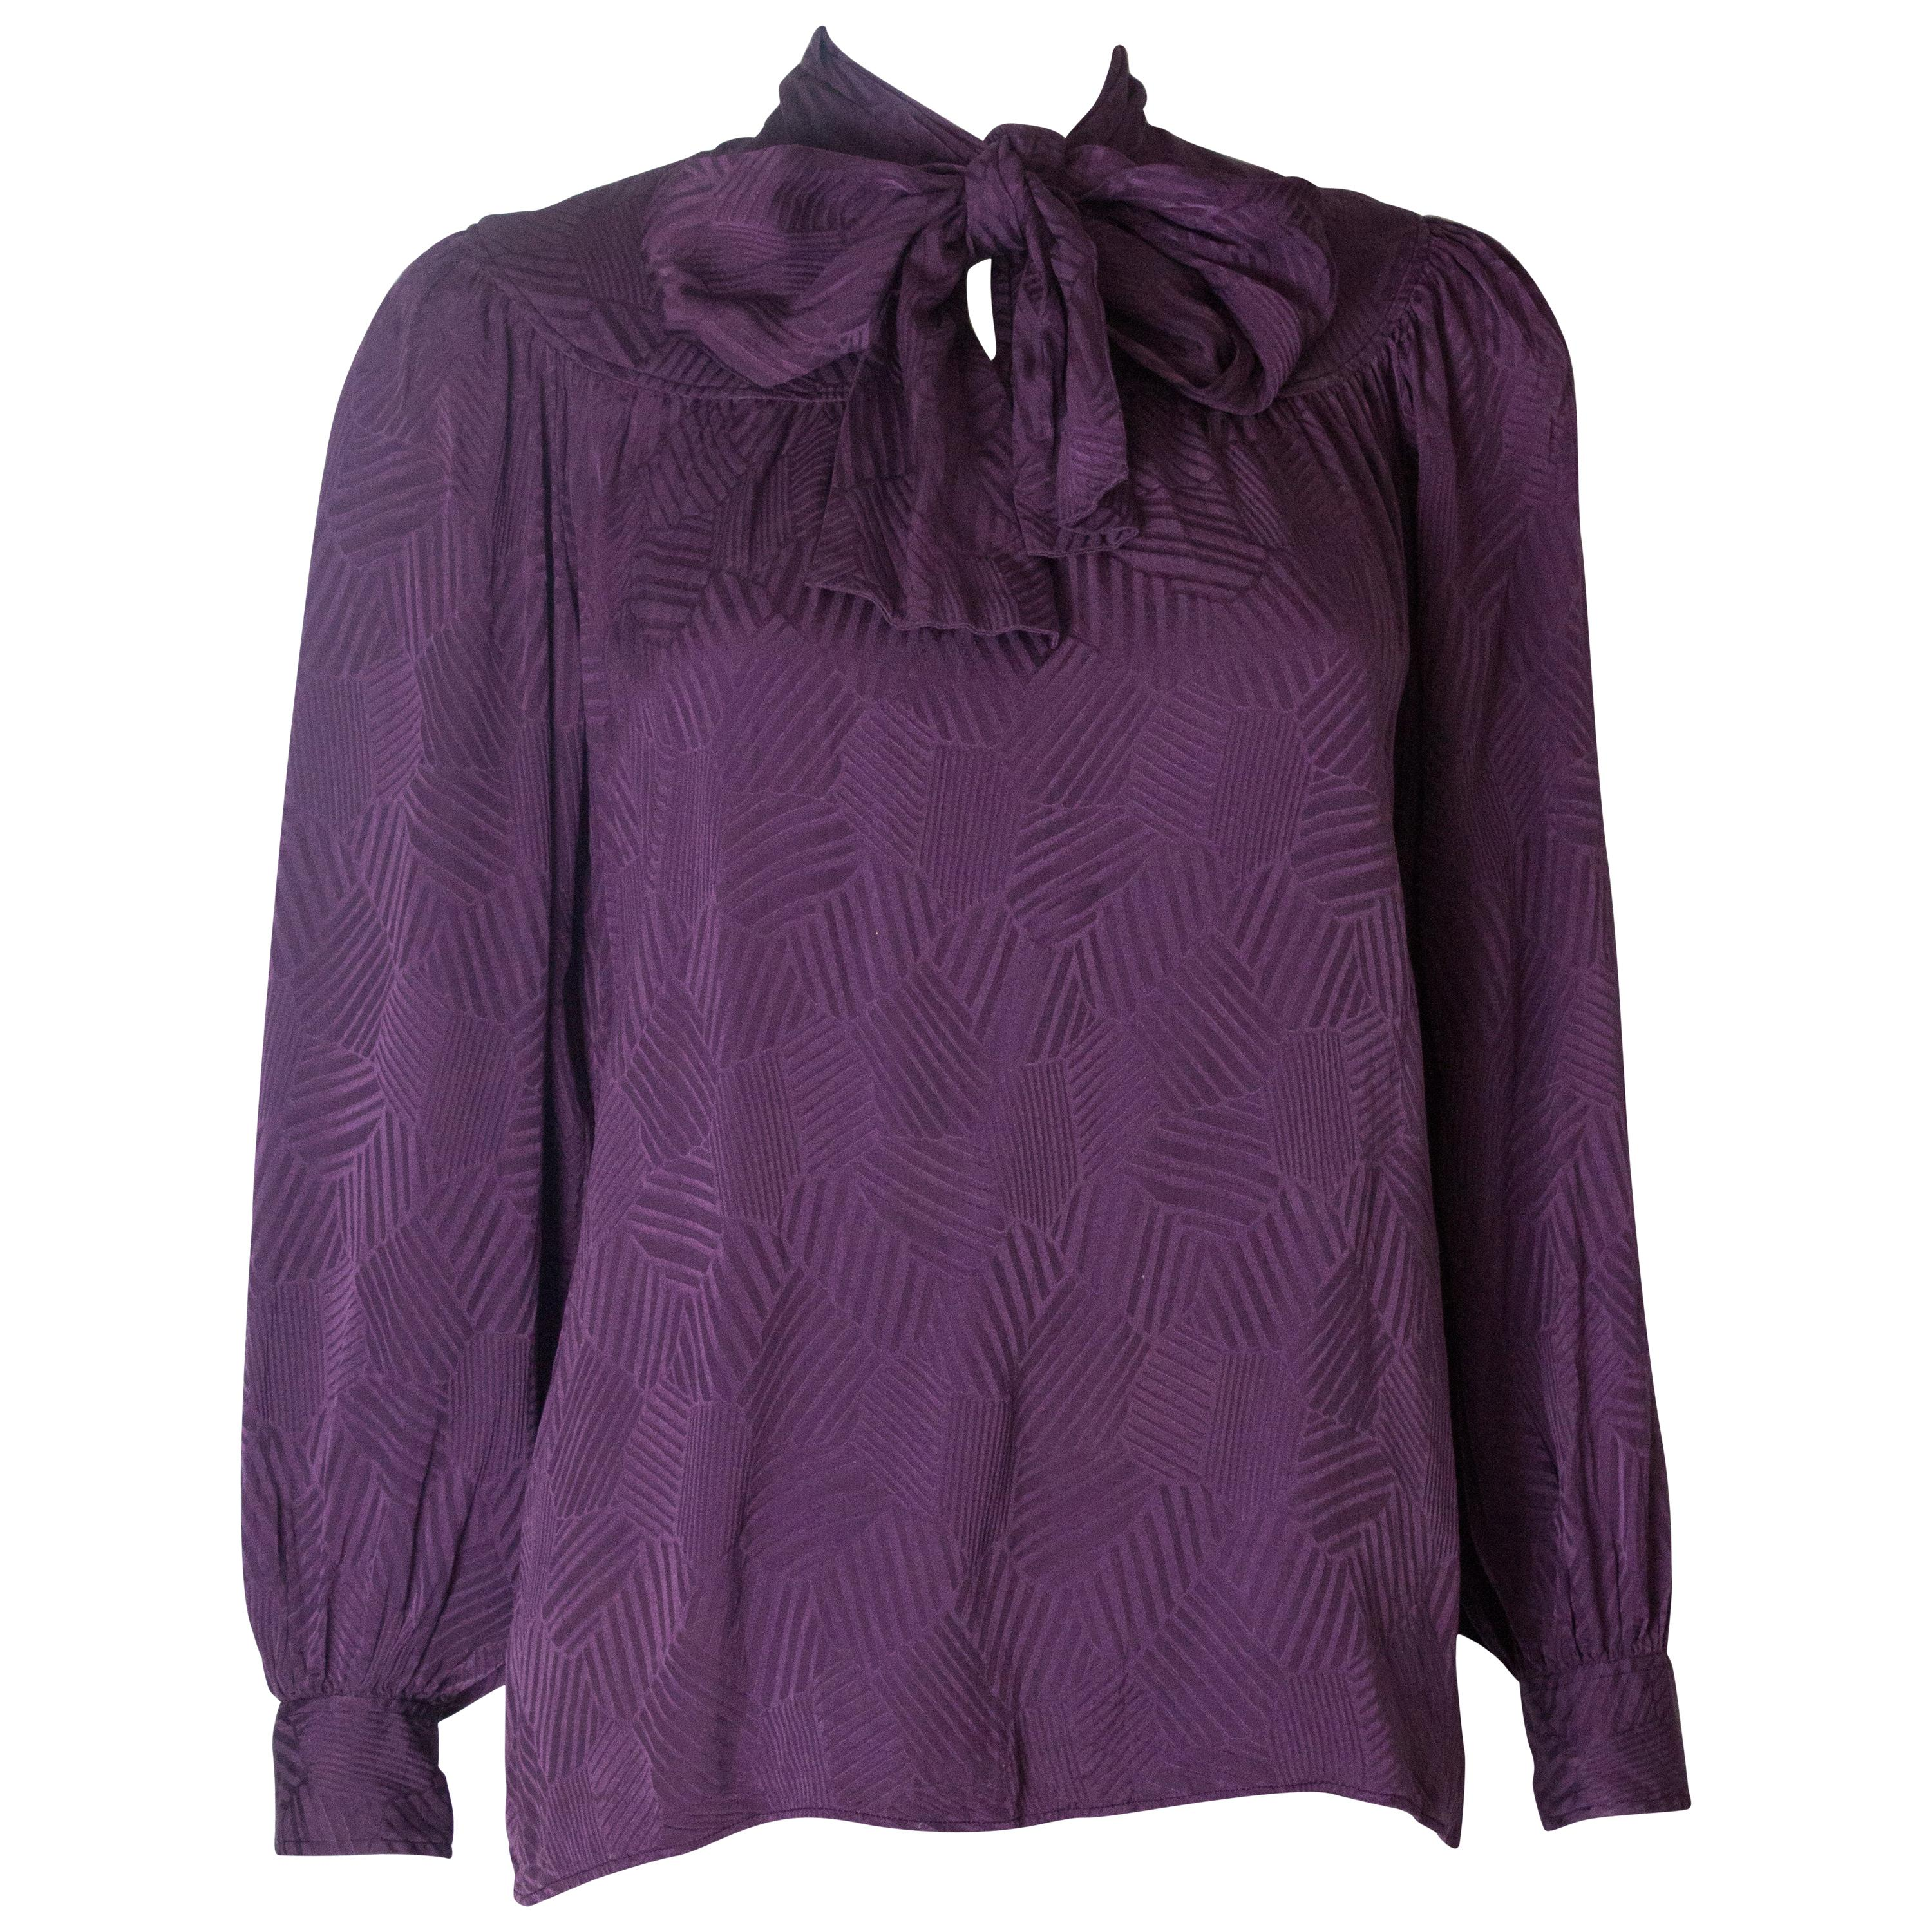 be9f32ab698fcc A Vintage 1970s silk purple pussy bow blouse by Yves Saint Laurent at  1stdibs